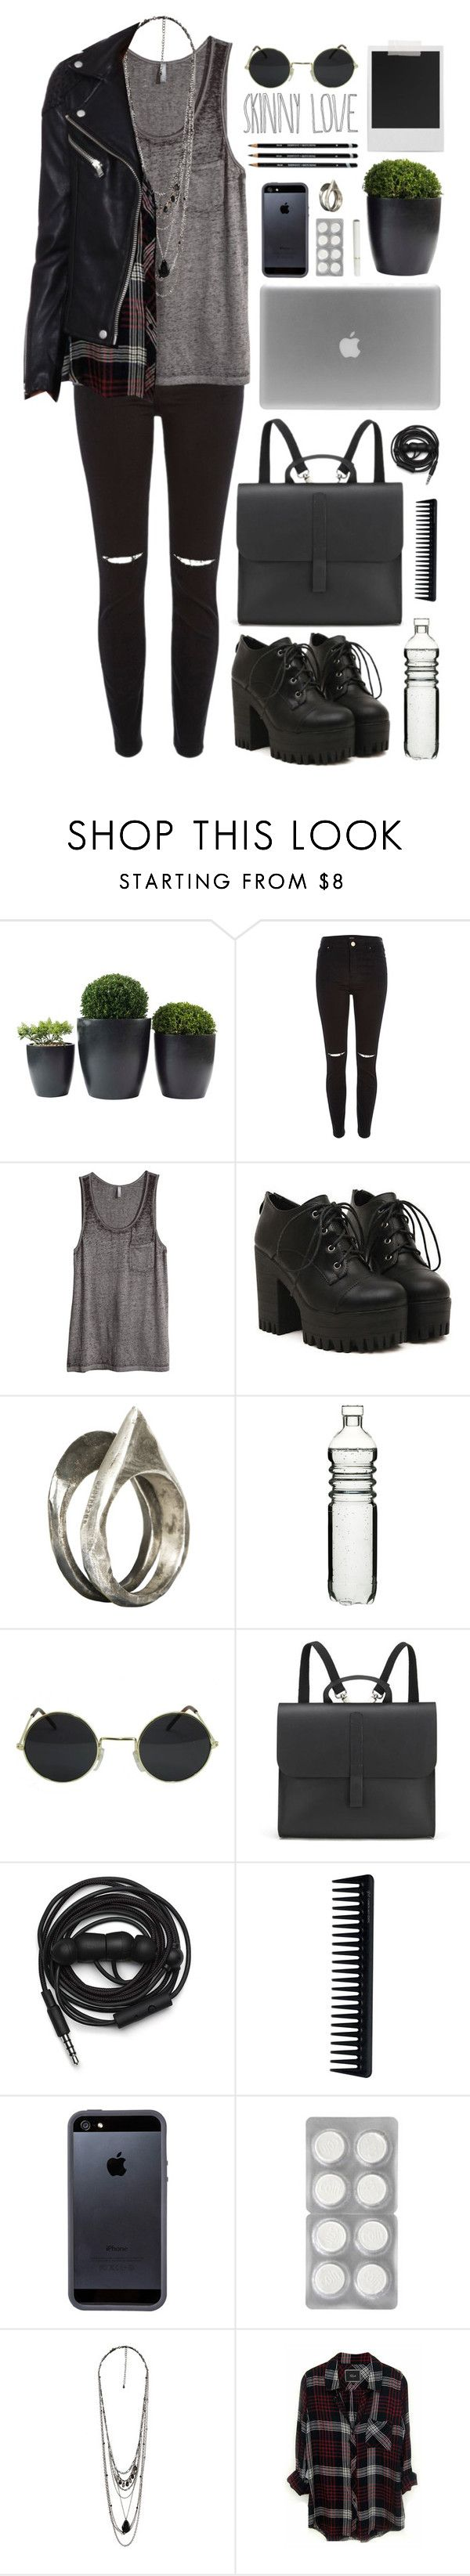 """grunge"" by mara-xx ❤ liked on Polyvore featuring River Island, H&M, Unearthen, Sagaform, Polaroid, Danielle Foster, Urbanears, GHD, Tavik Swimwear and Forever 21"